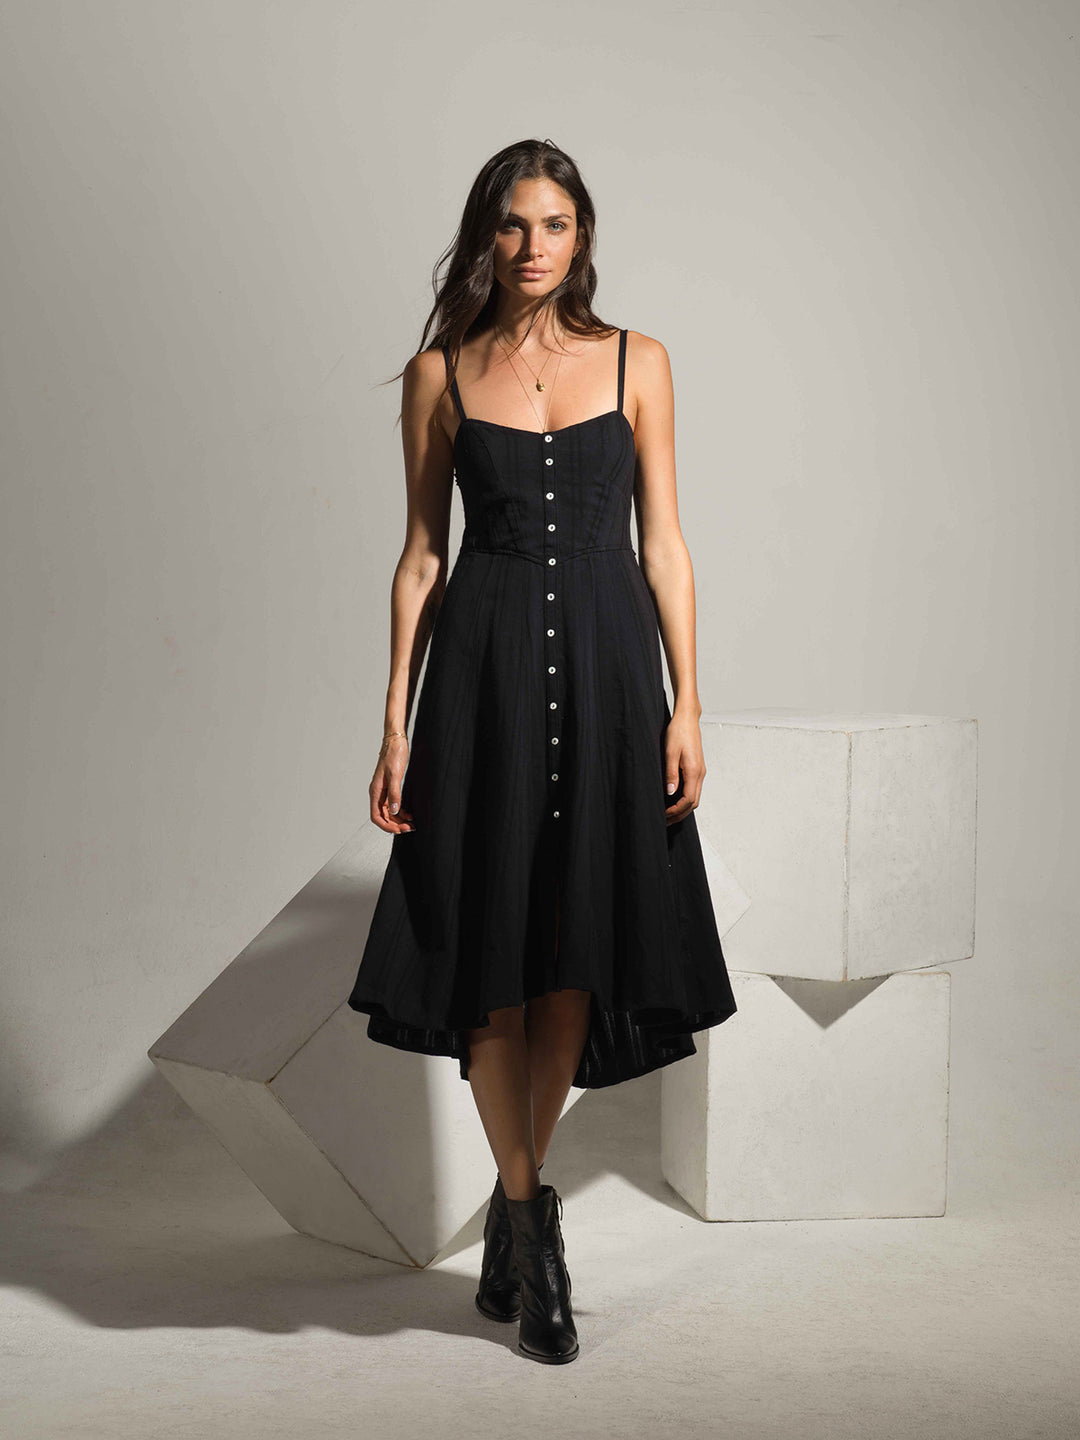 Hamptons Dress in Black